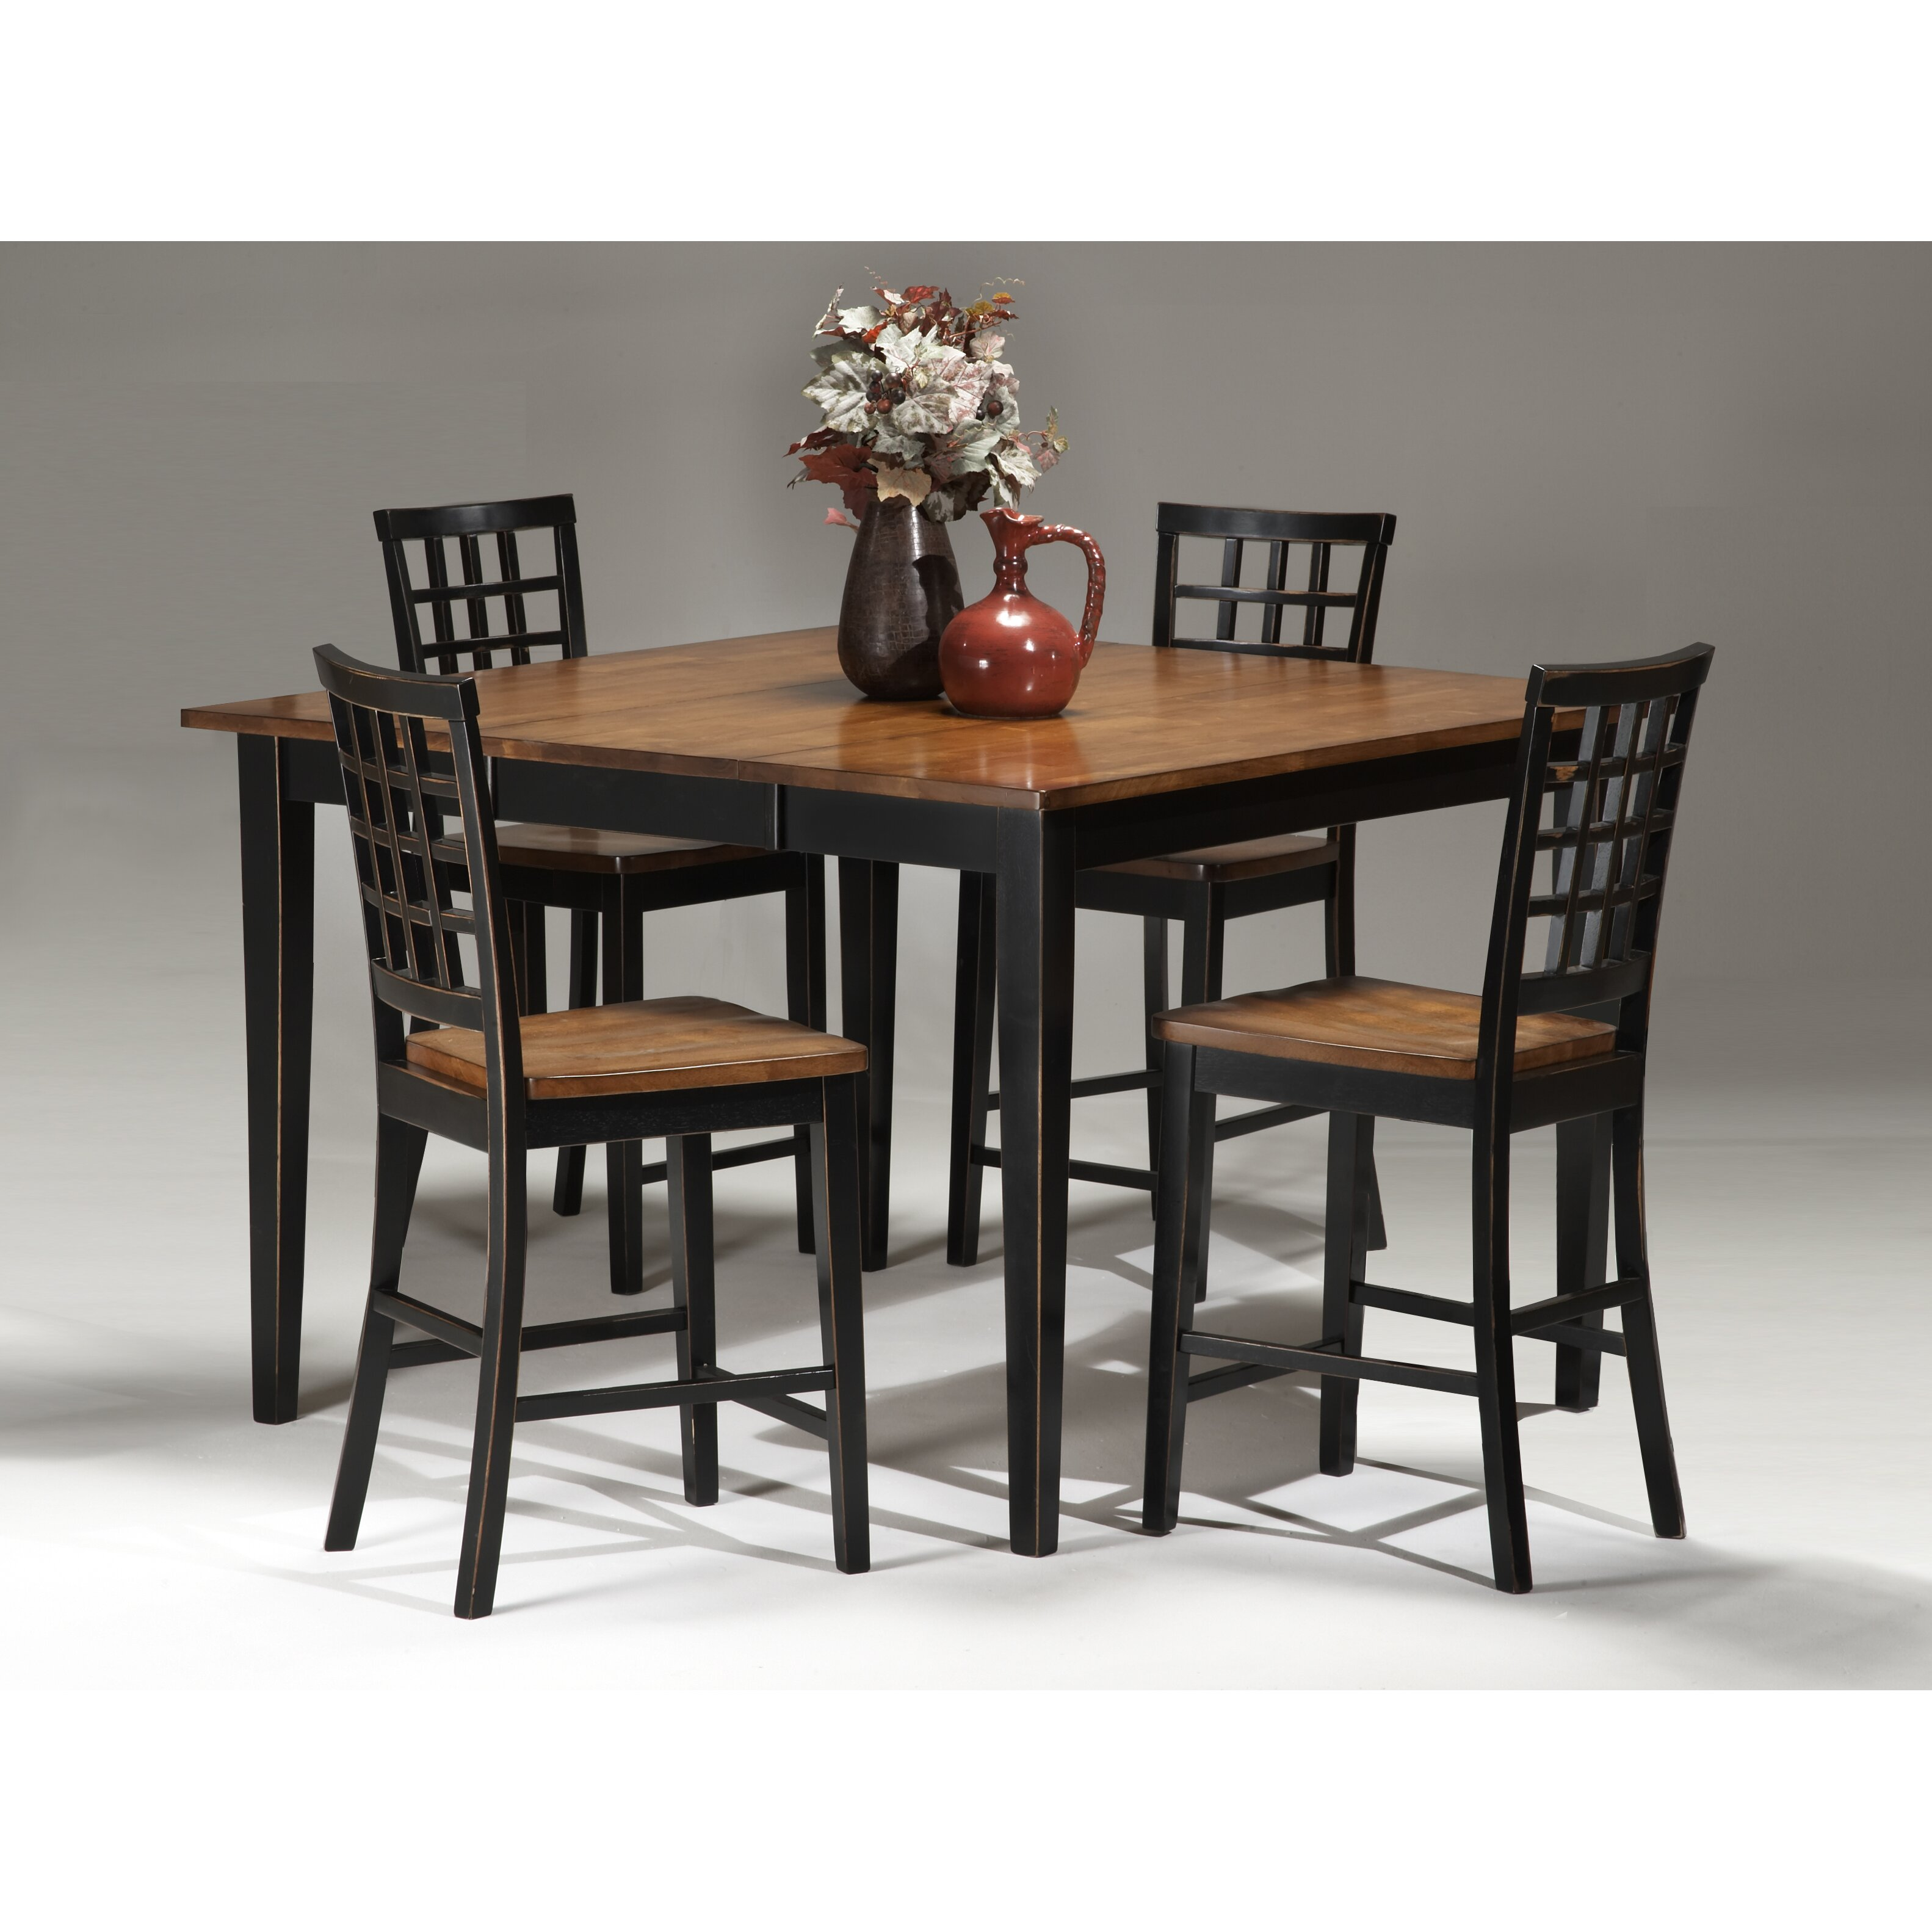 imagio home by intercon arlington counter height gathering table: tabacon counter height dining table wine